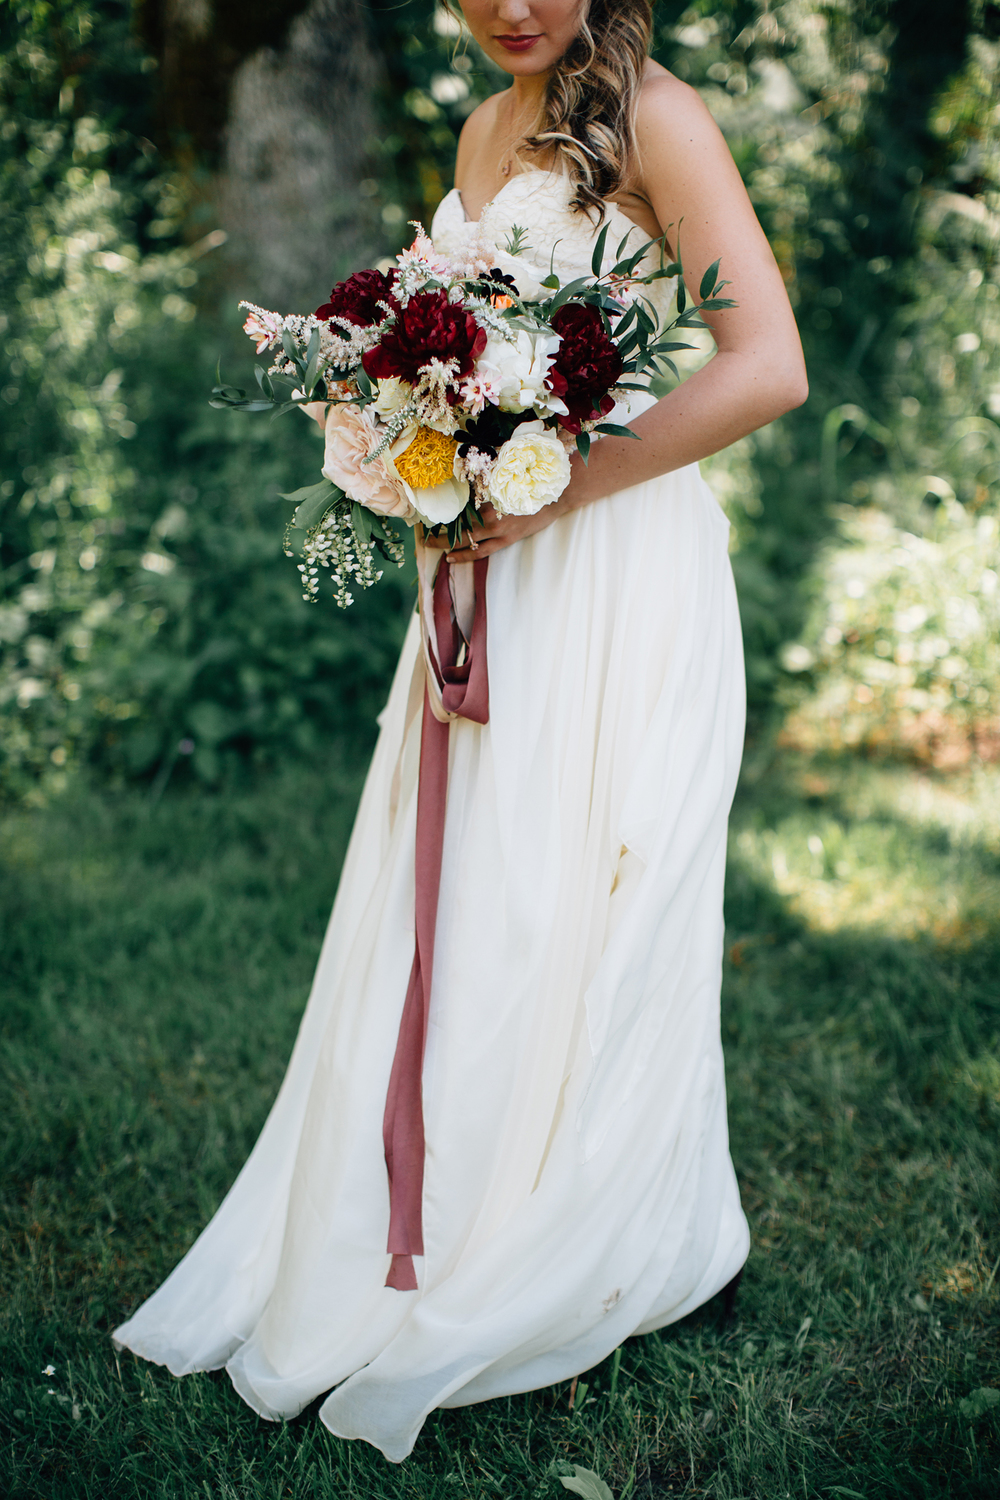 bridal wedding dress and bouquet with ribbon